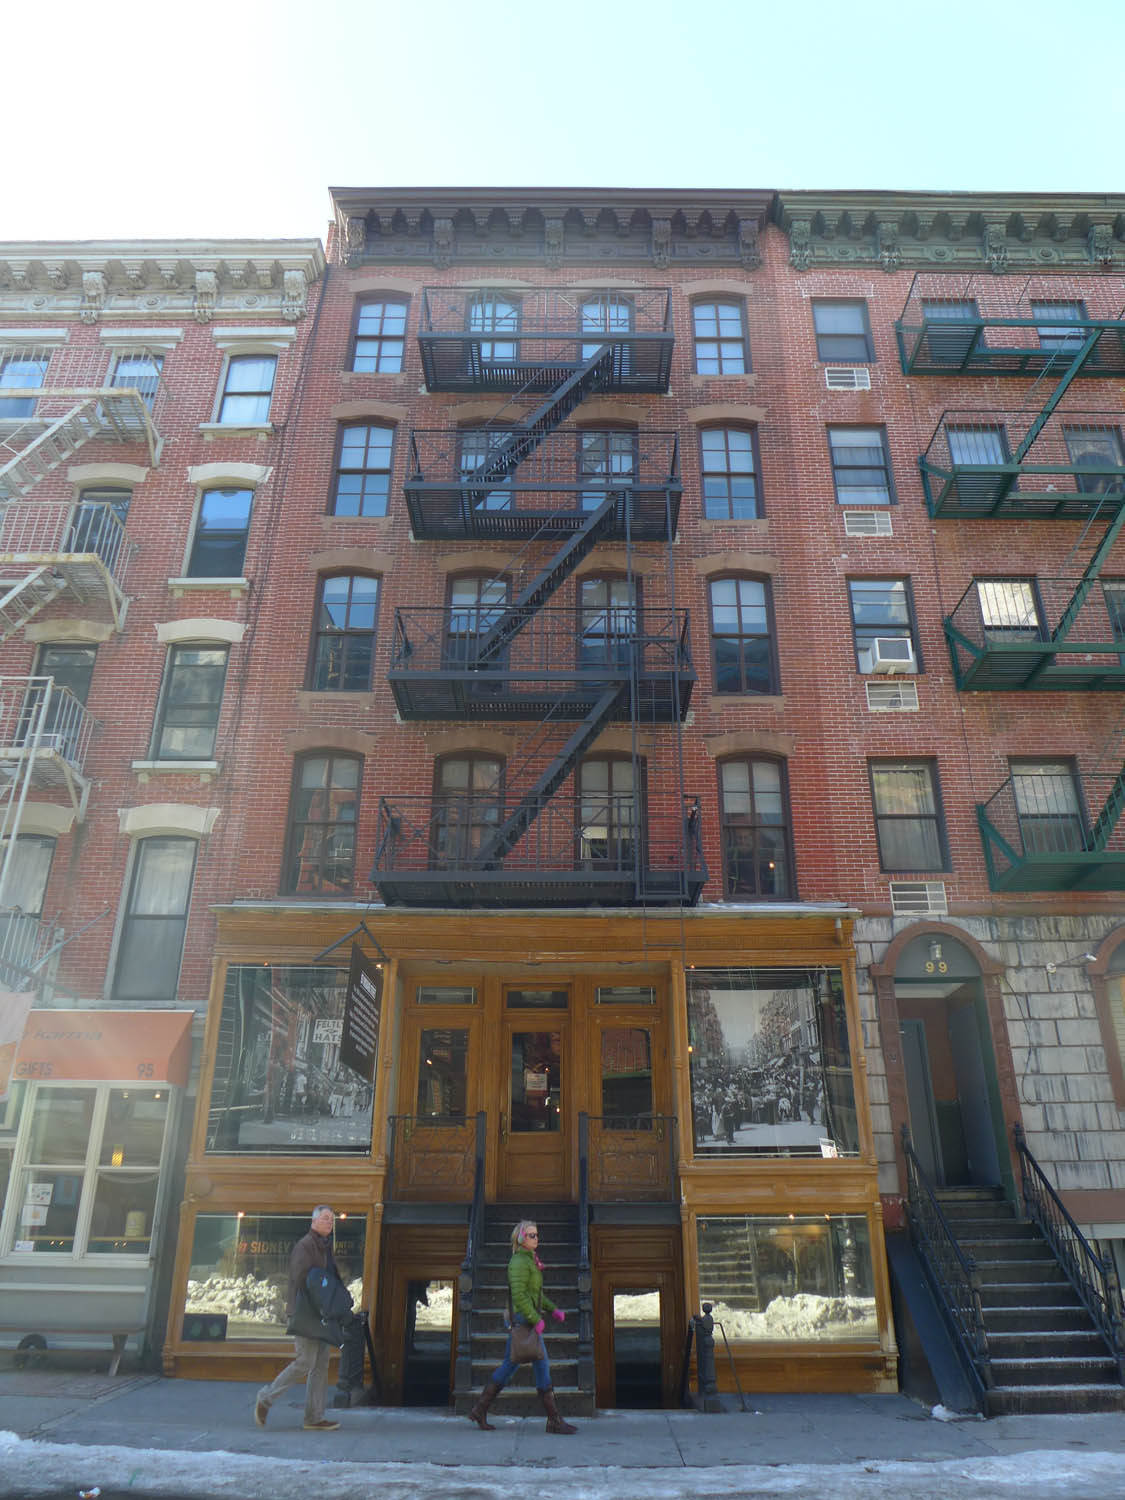 Last time I was here, I toured the ground floor of the museum's tenement building